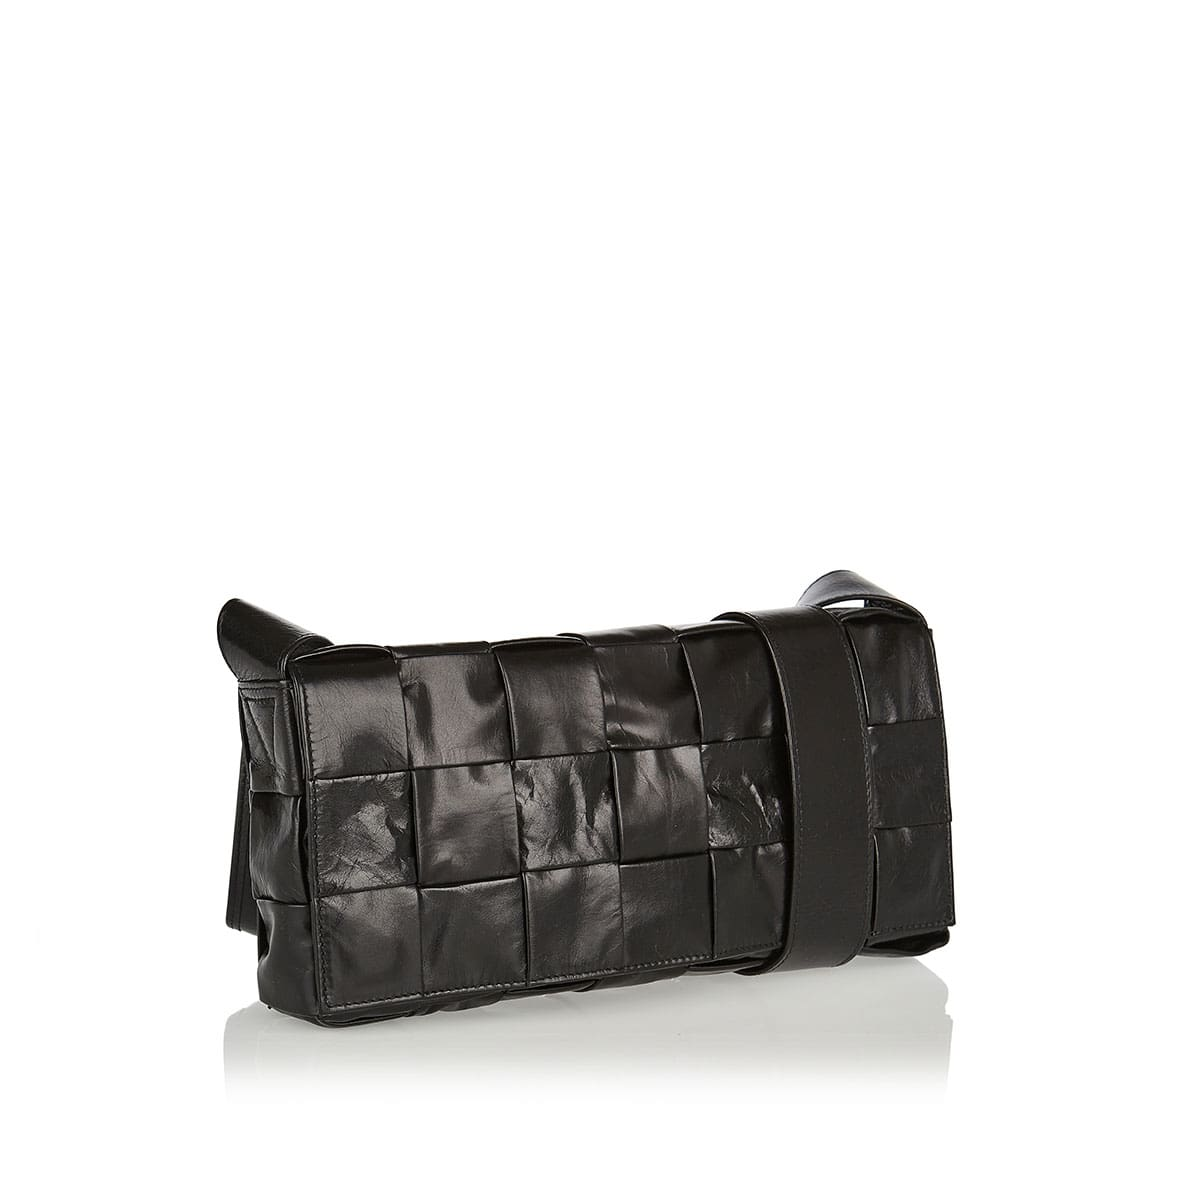 The Stretch Cassette leather bag